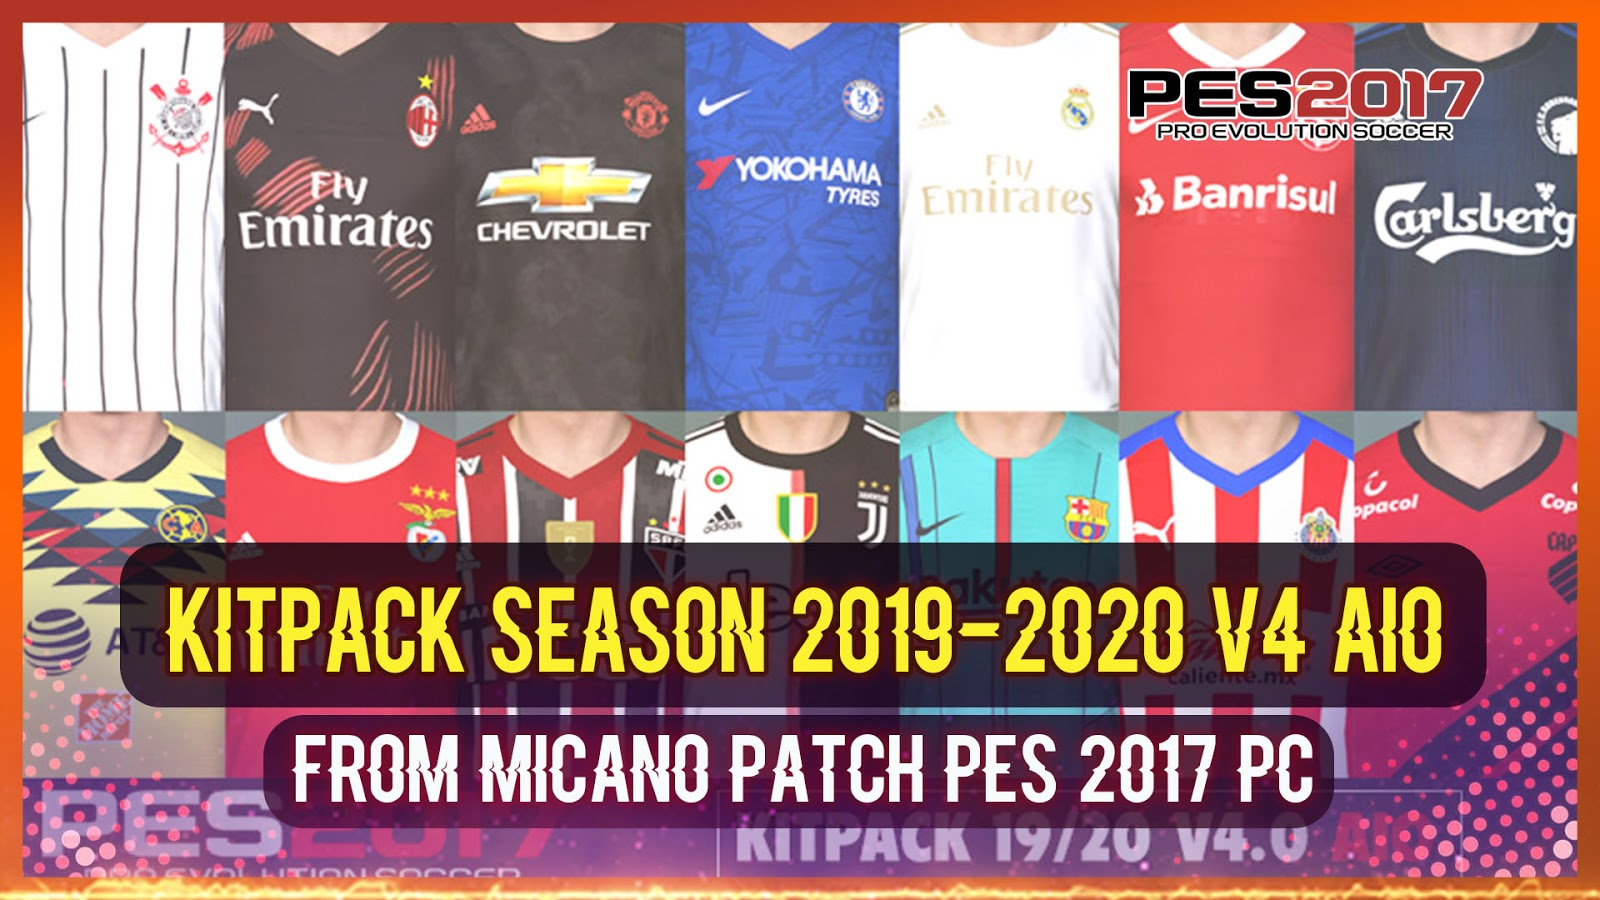 b8024bfb0c7 PES 2017 Kitpacks Season 2019 20 V4 AIO from Micano4u Patch Download  Install on PC